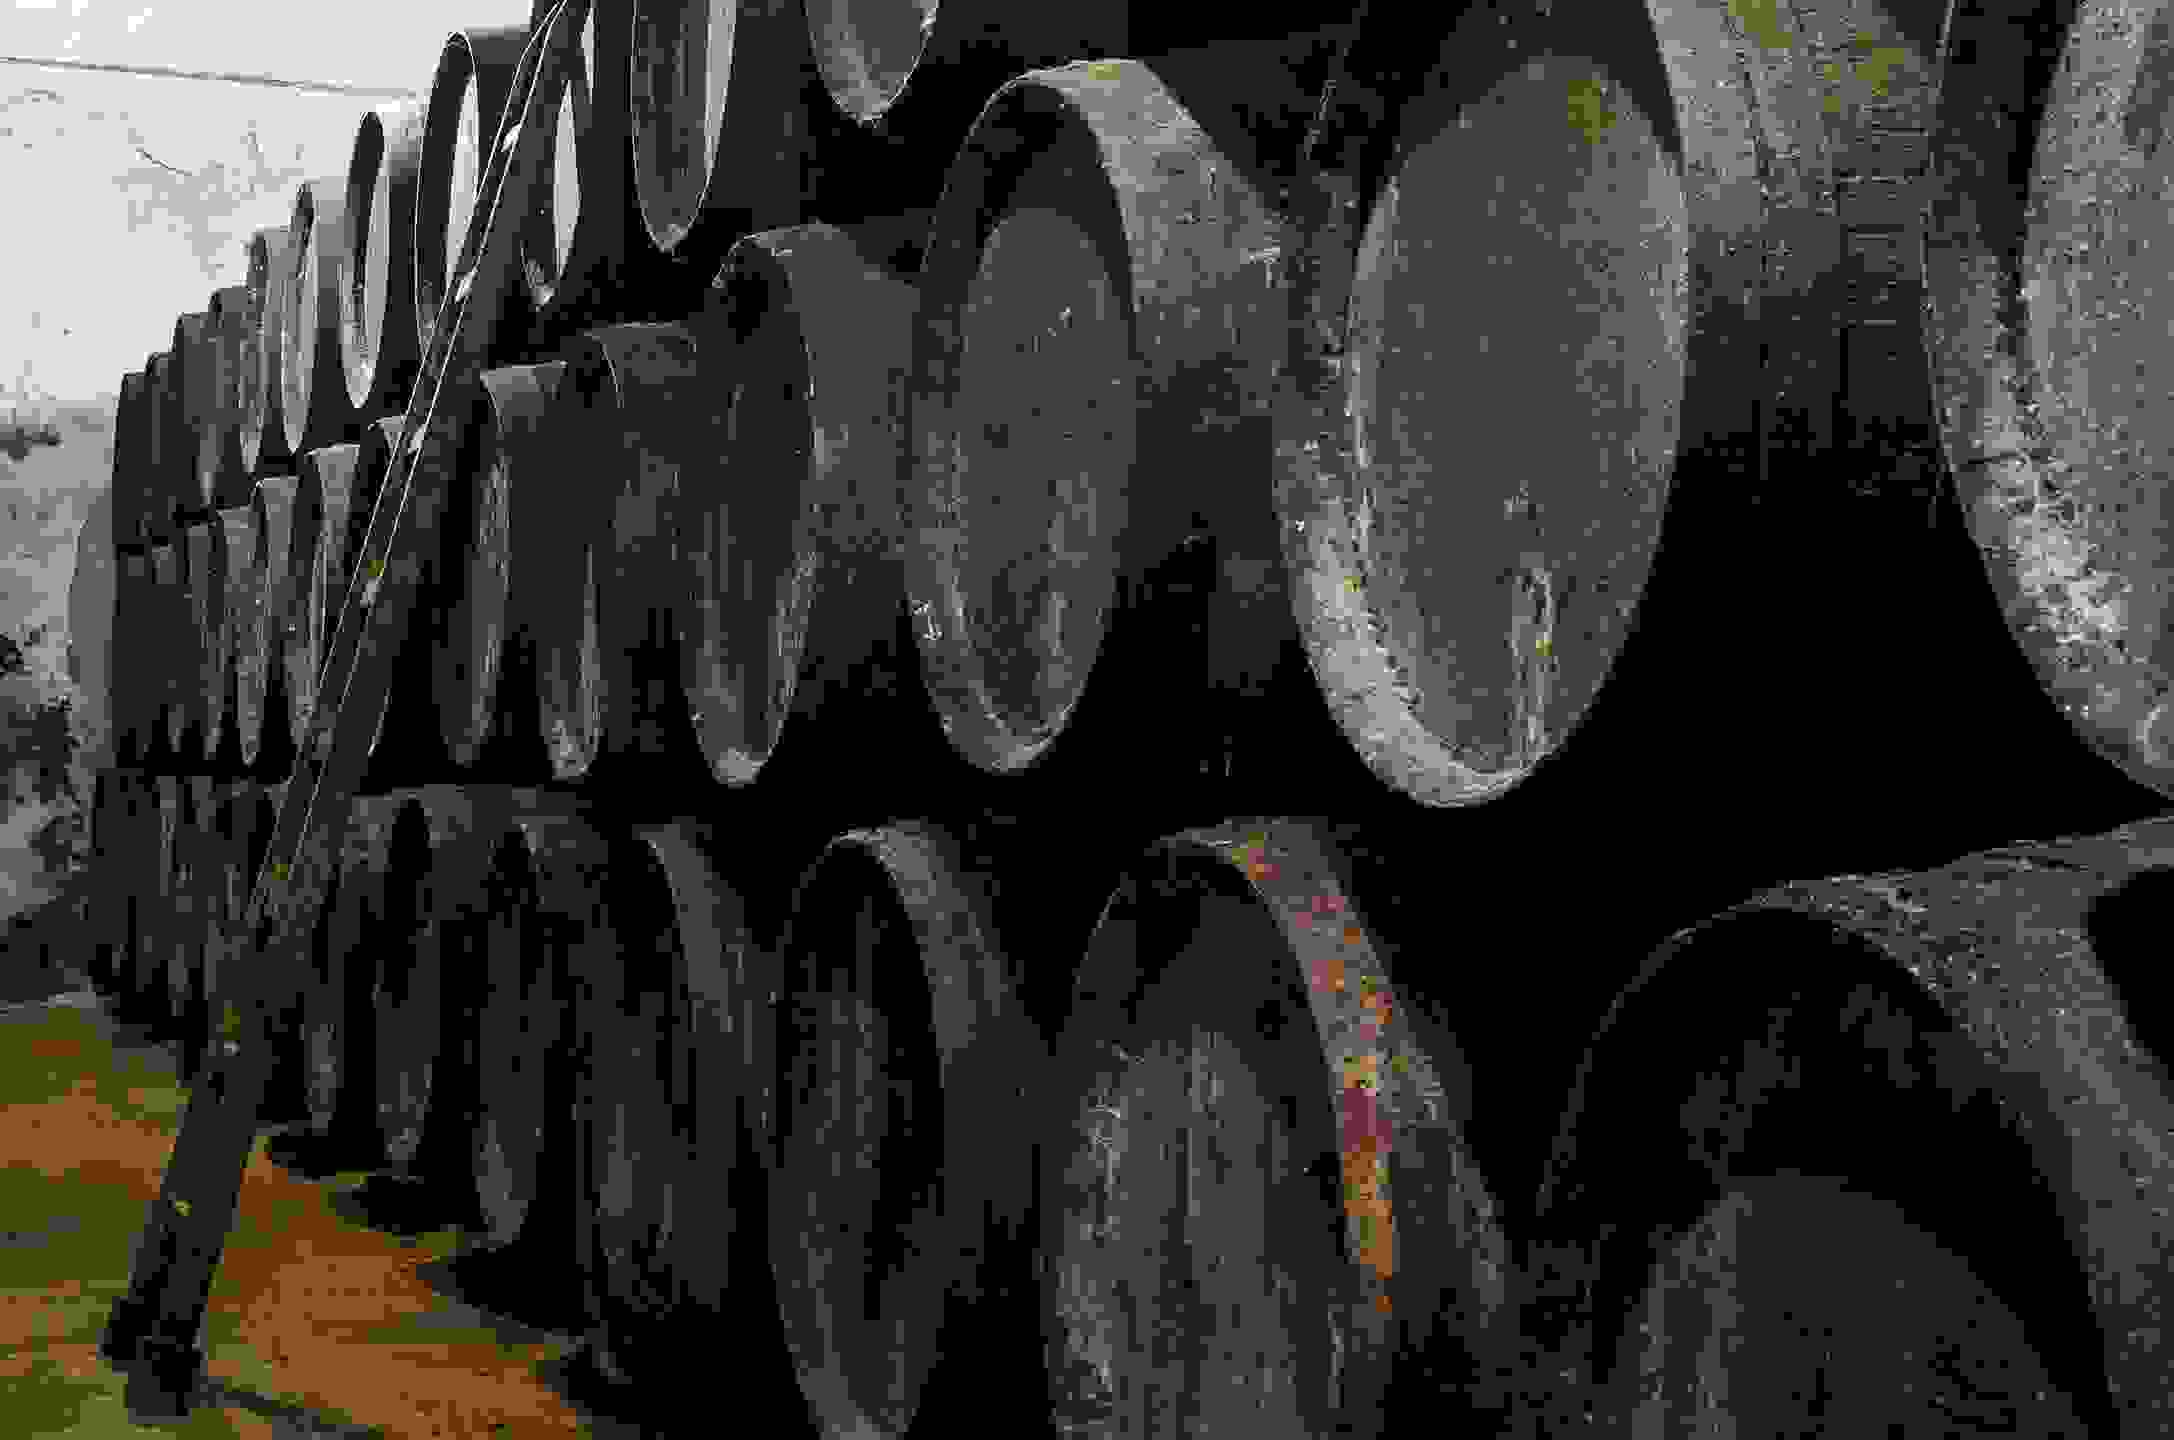 Whisky barrels show the history and journey the scotch and whisky have taken,